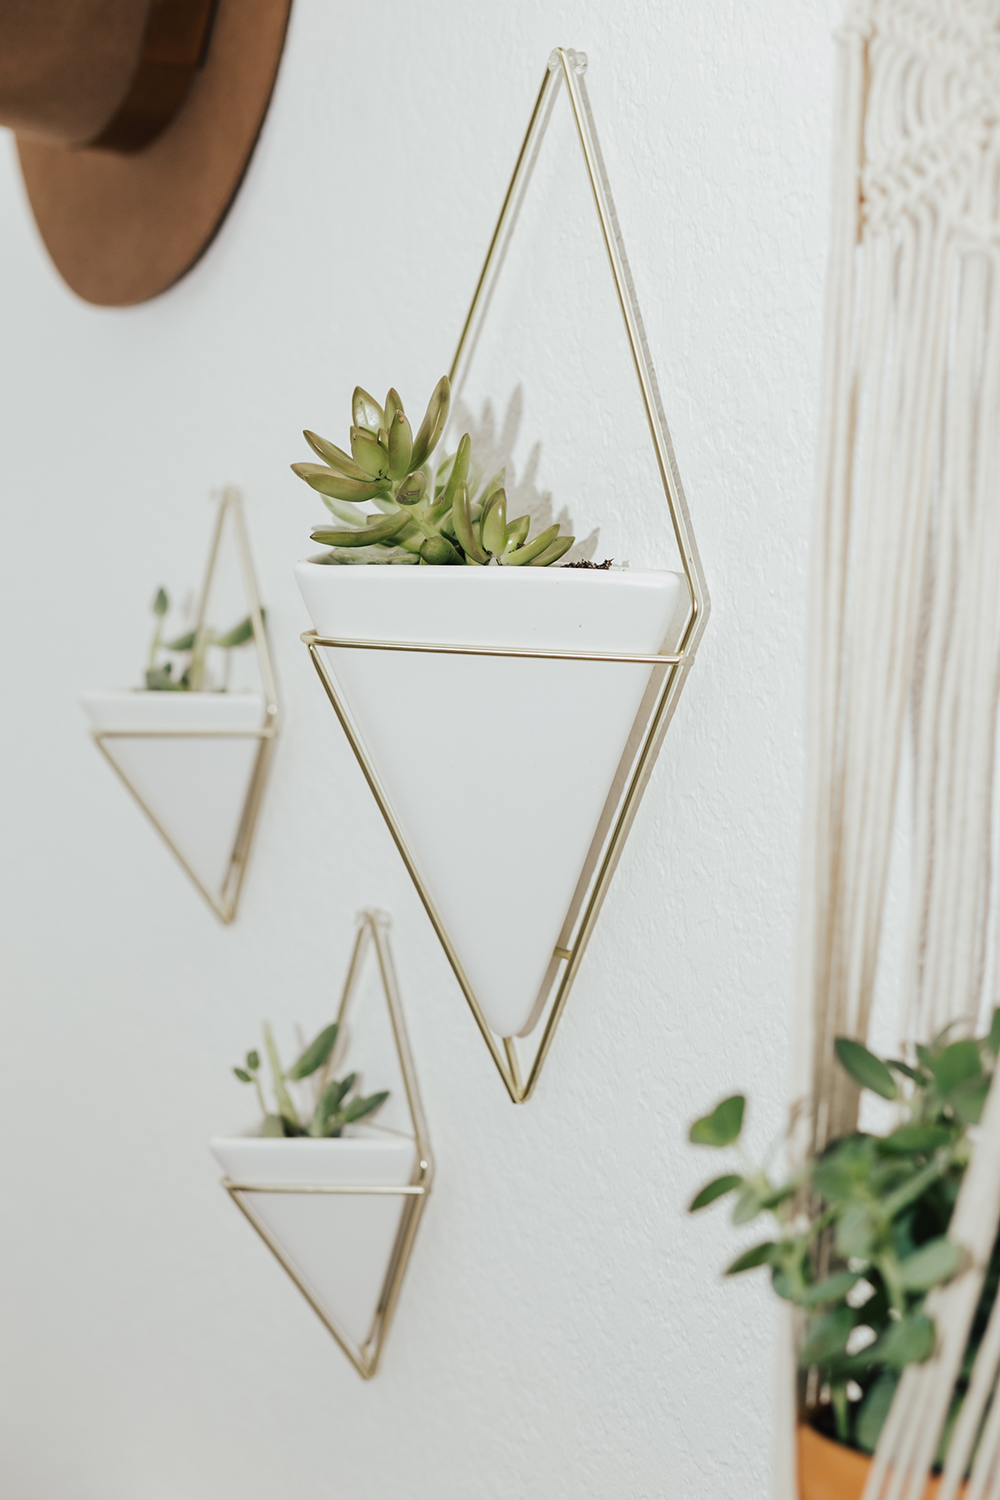 livvyland-blog-olivia-watson-austin-texas-fashion-blogger-urban-outfitters-record-player-nook-room-setup-holder-interior-boho-style-succulent-hangers-3